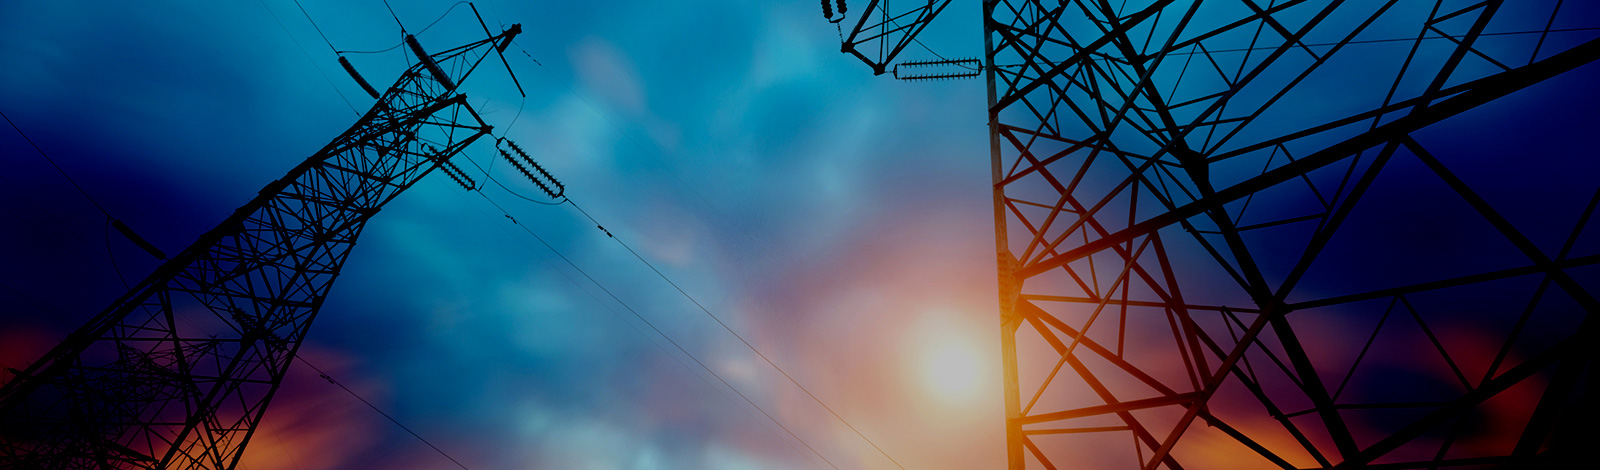 Technology Management Image: How To Face Disruption In The Energy And Utilities Industry